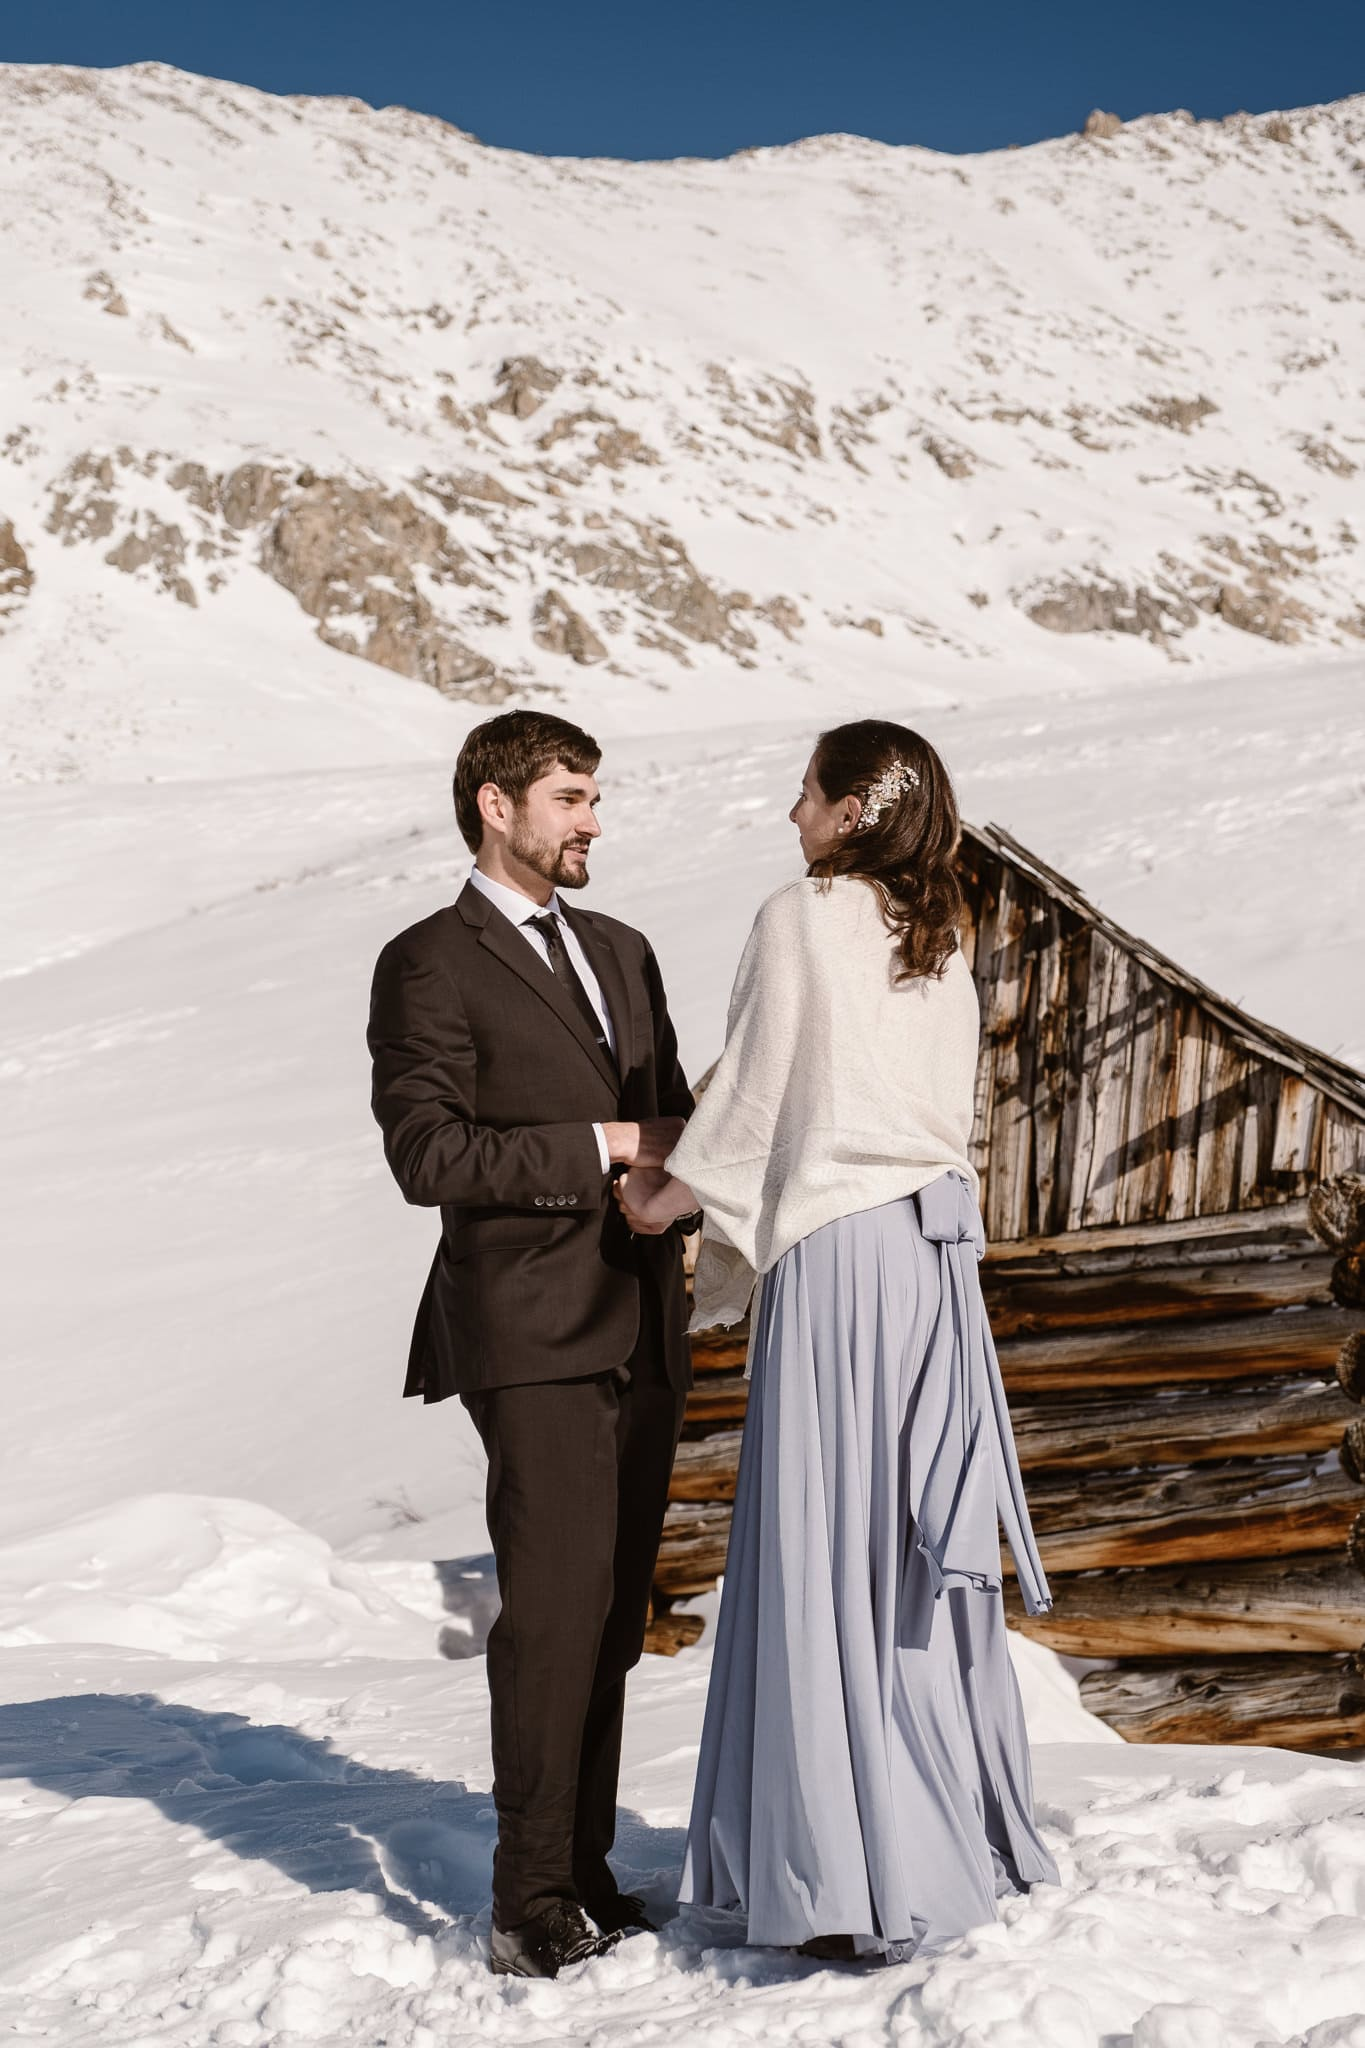 Bride and groom exchanging vows in snow covered mountains of Colorado, winter elopement photography